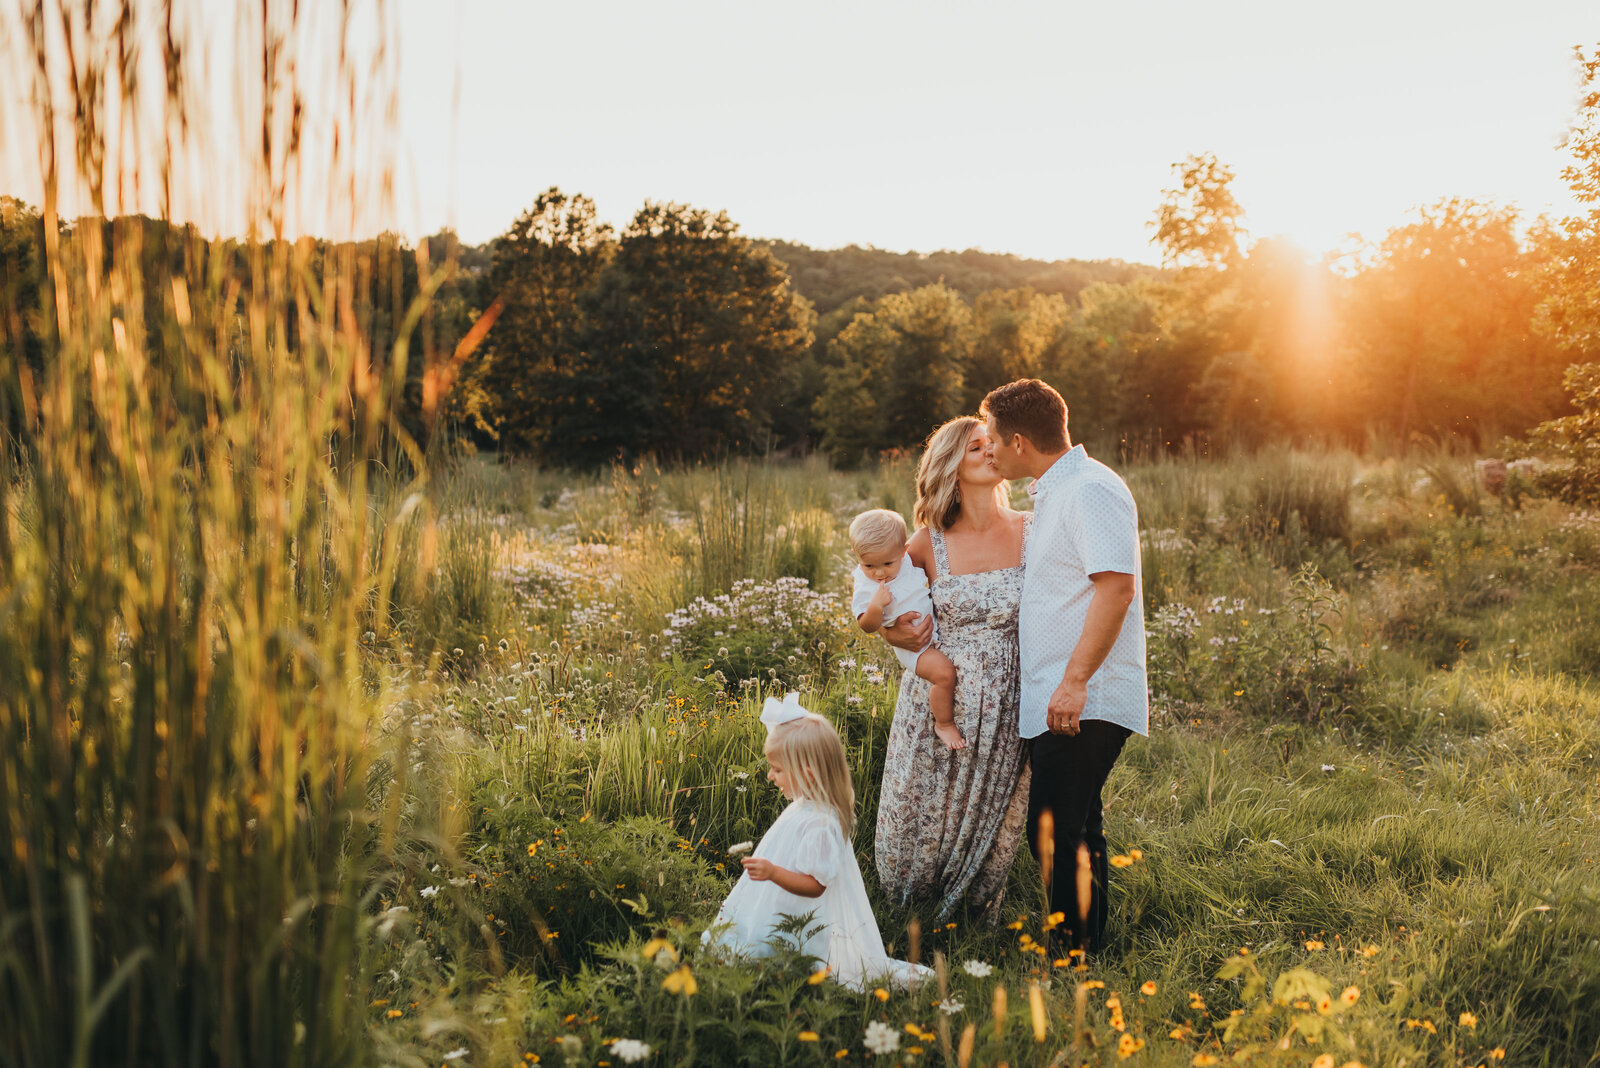 Sunset family photography session couple kissing